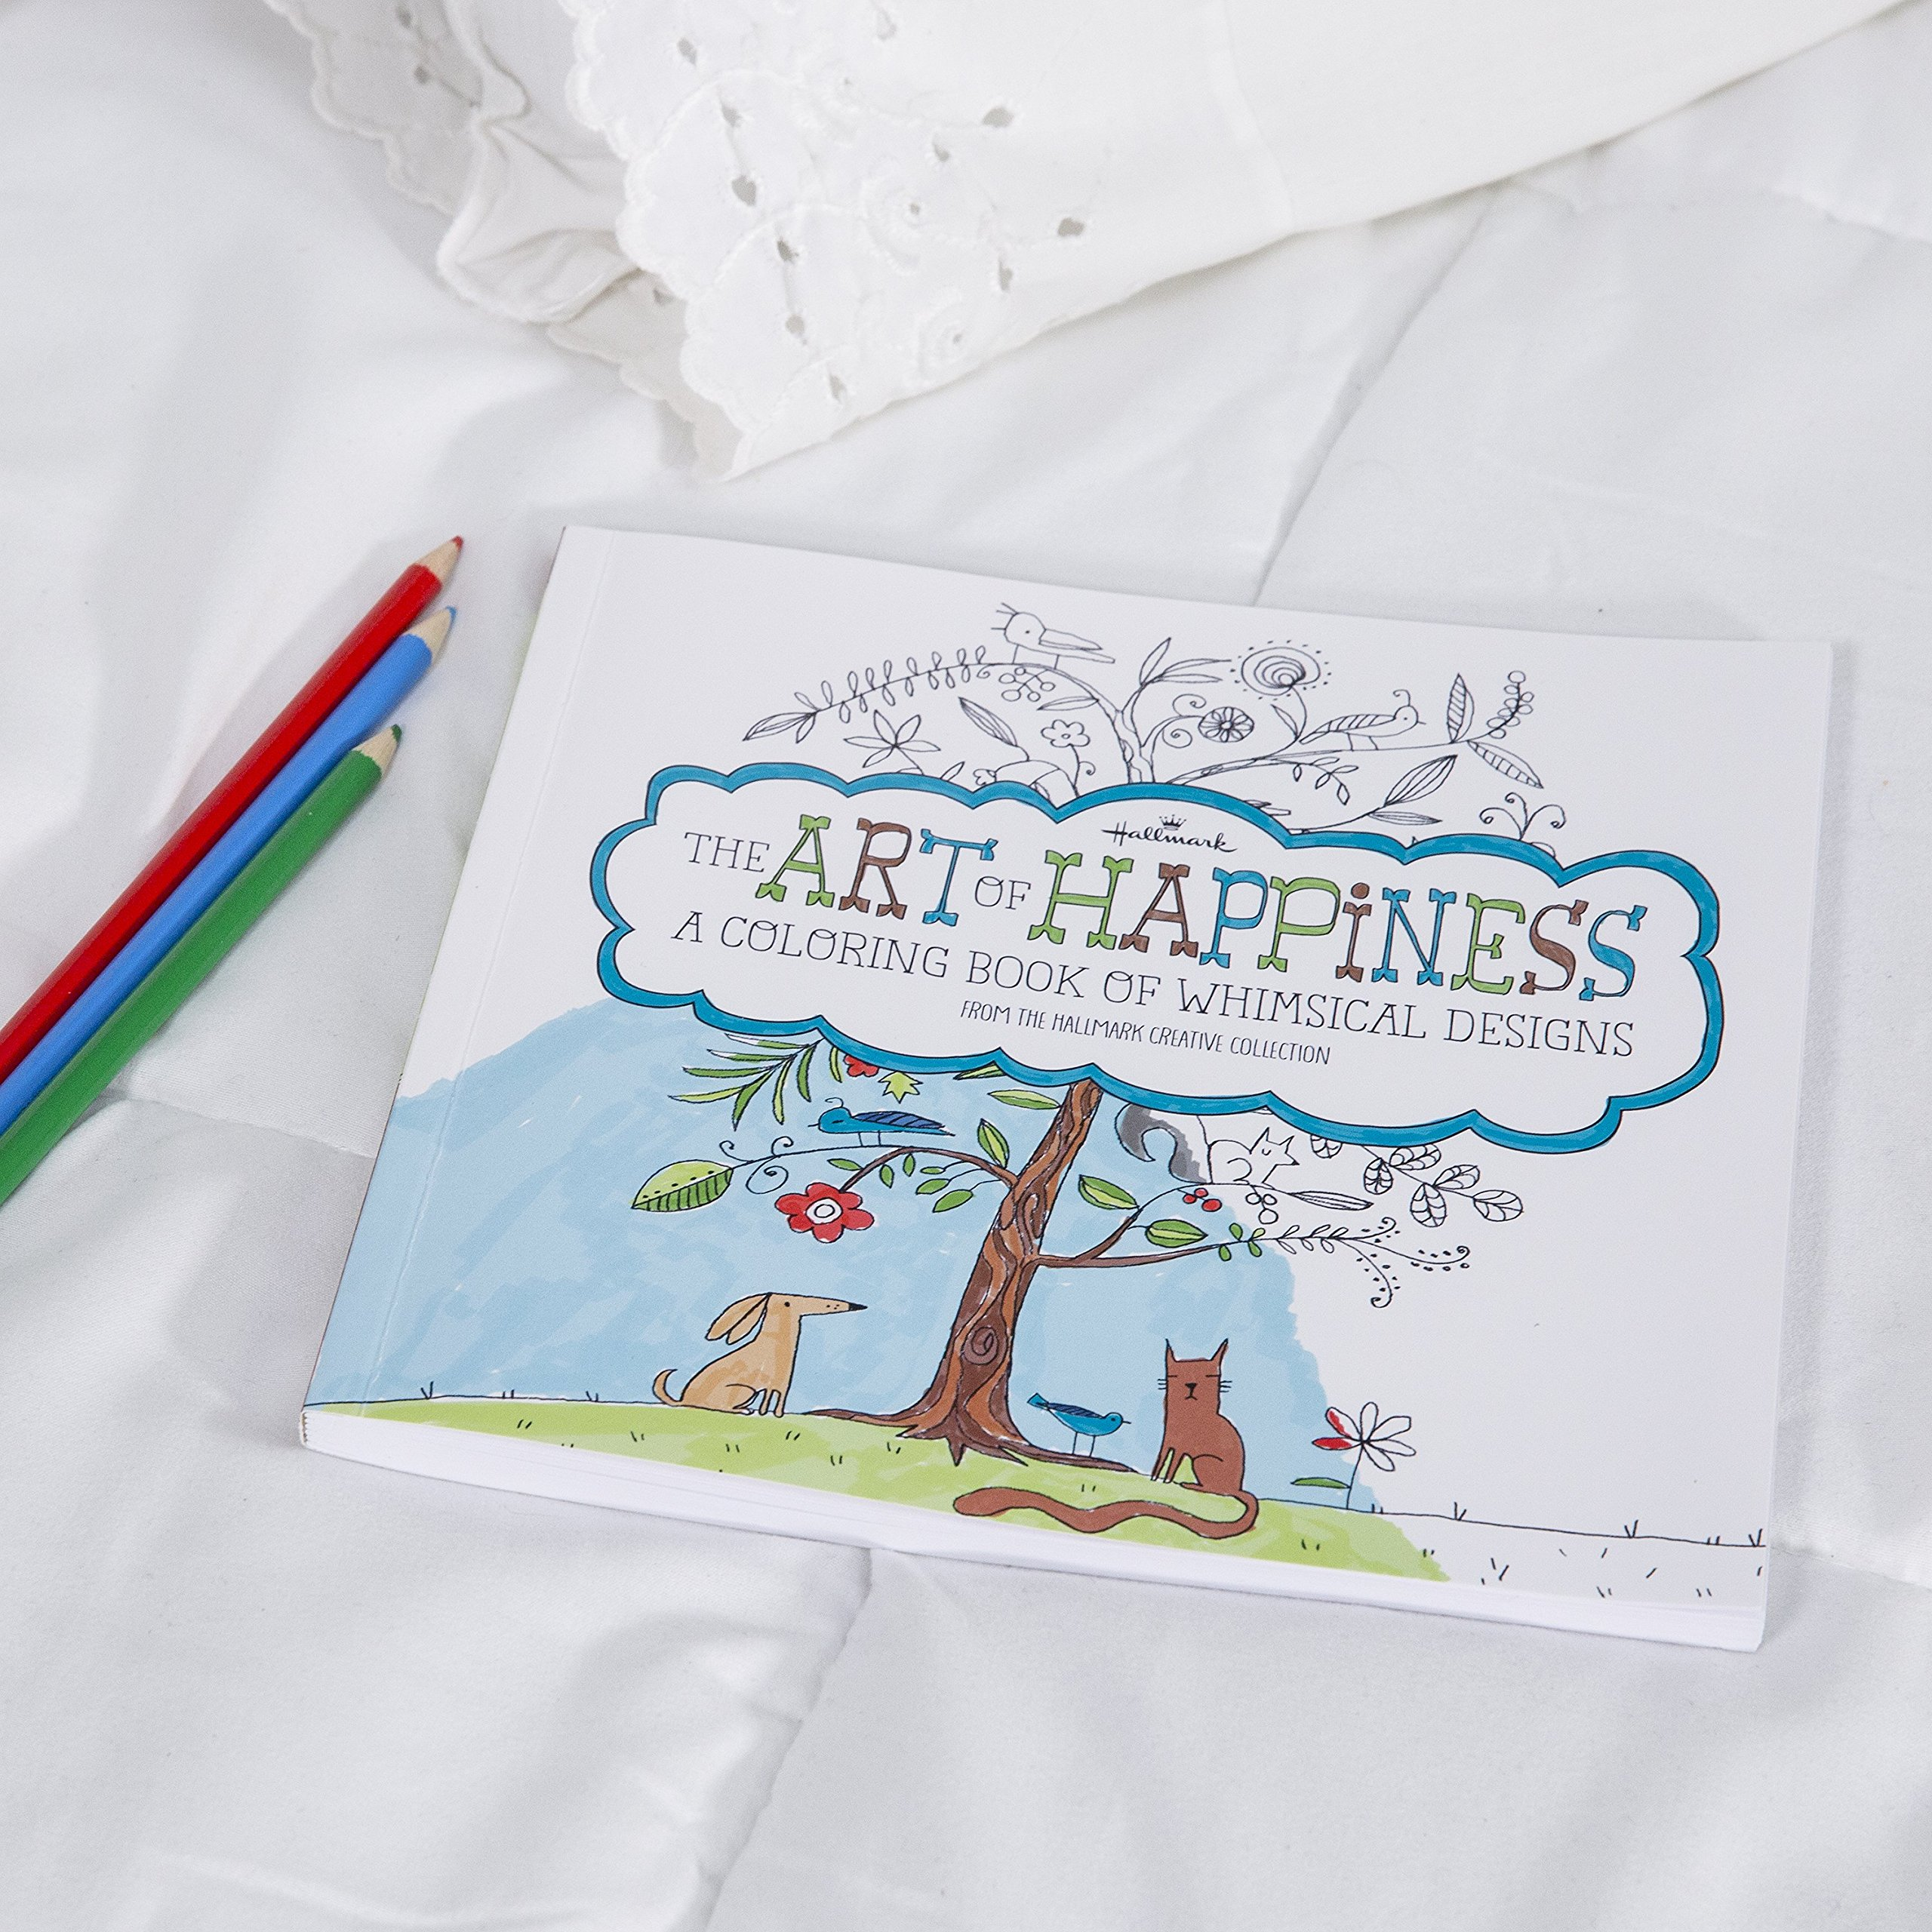 Whimsical designs coloring book - The Art Of Happiness A Coloring Book Of Whimsical Designs For Adults From The Hallmark Creative Collection 45 High Quality Sheets To Color Amazon Com